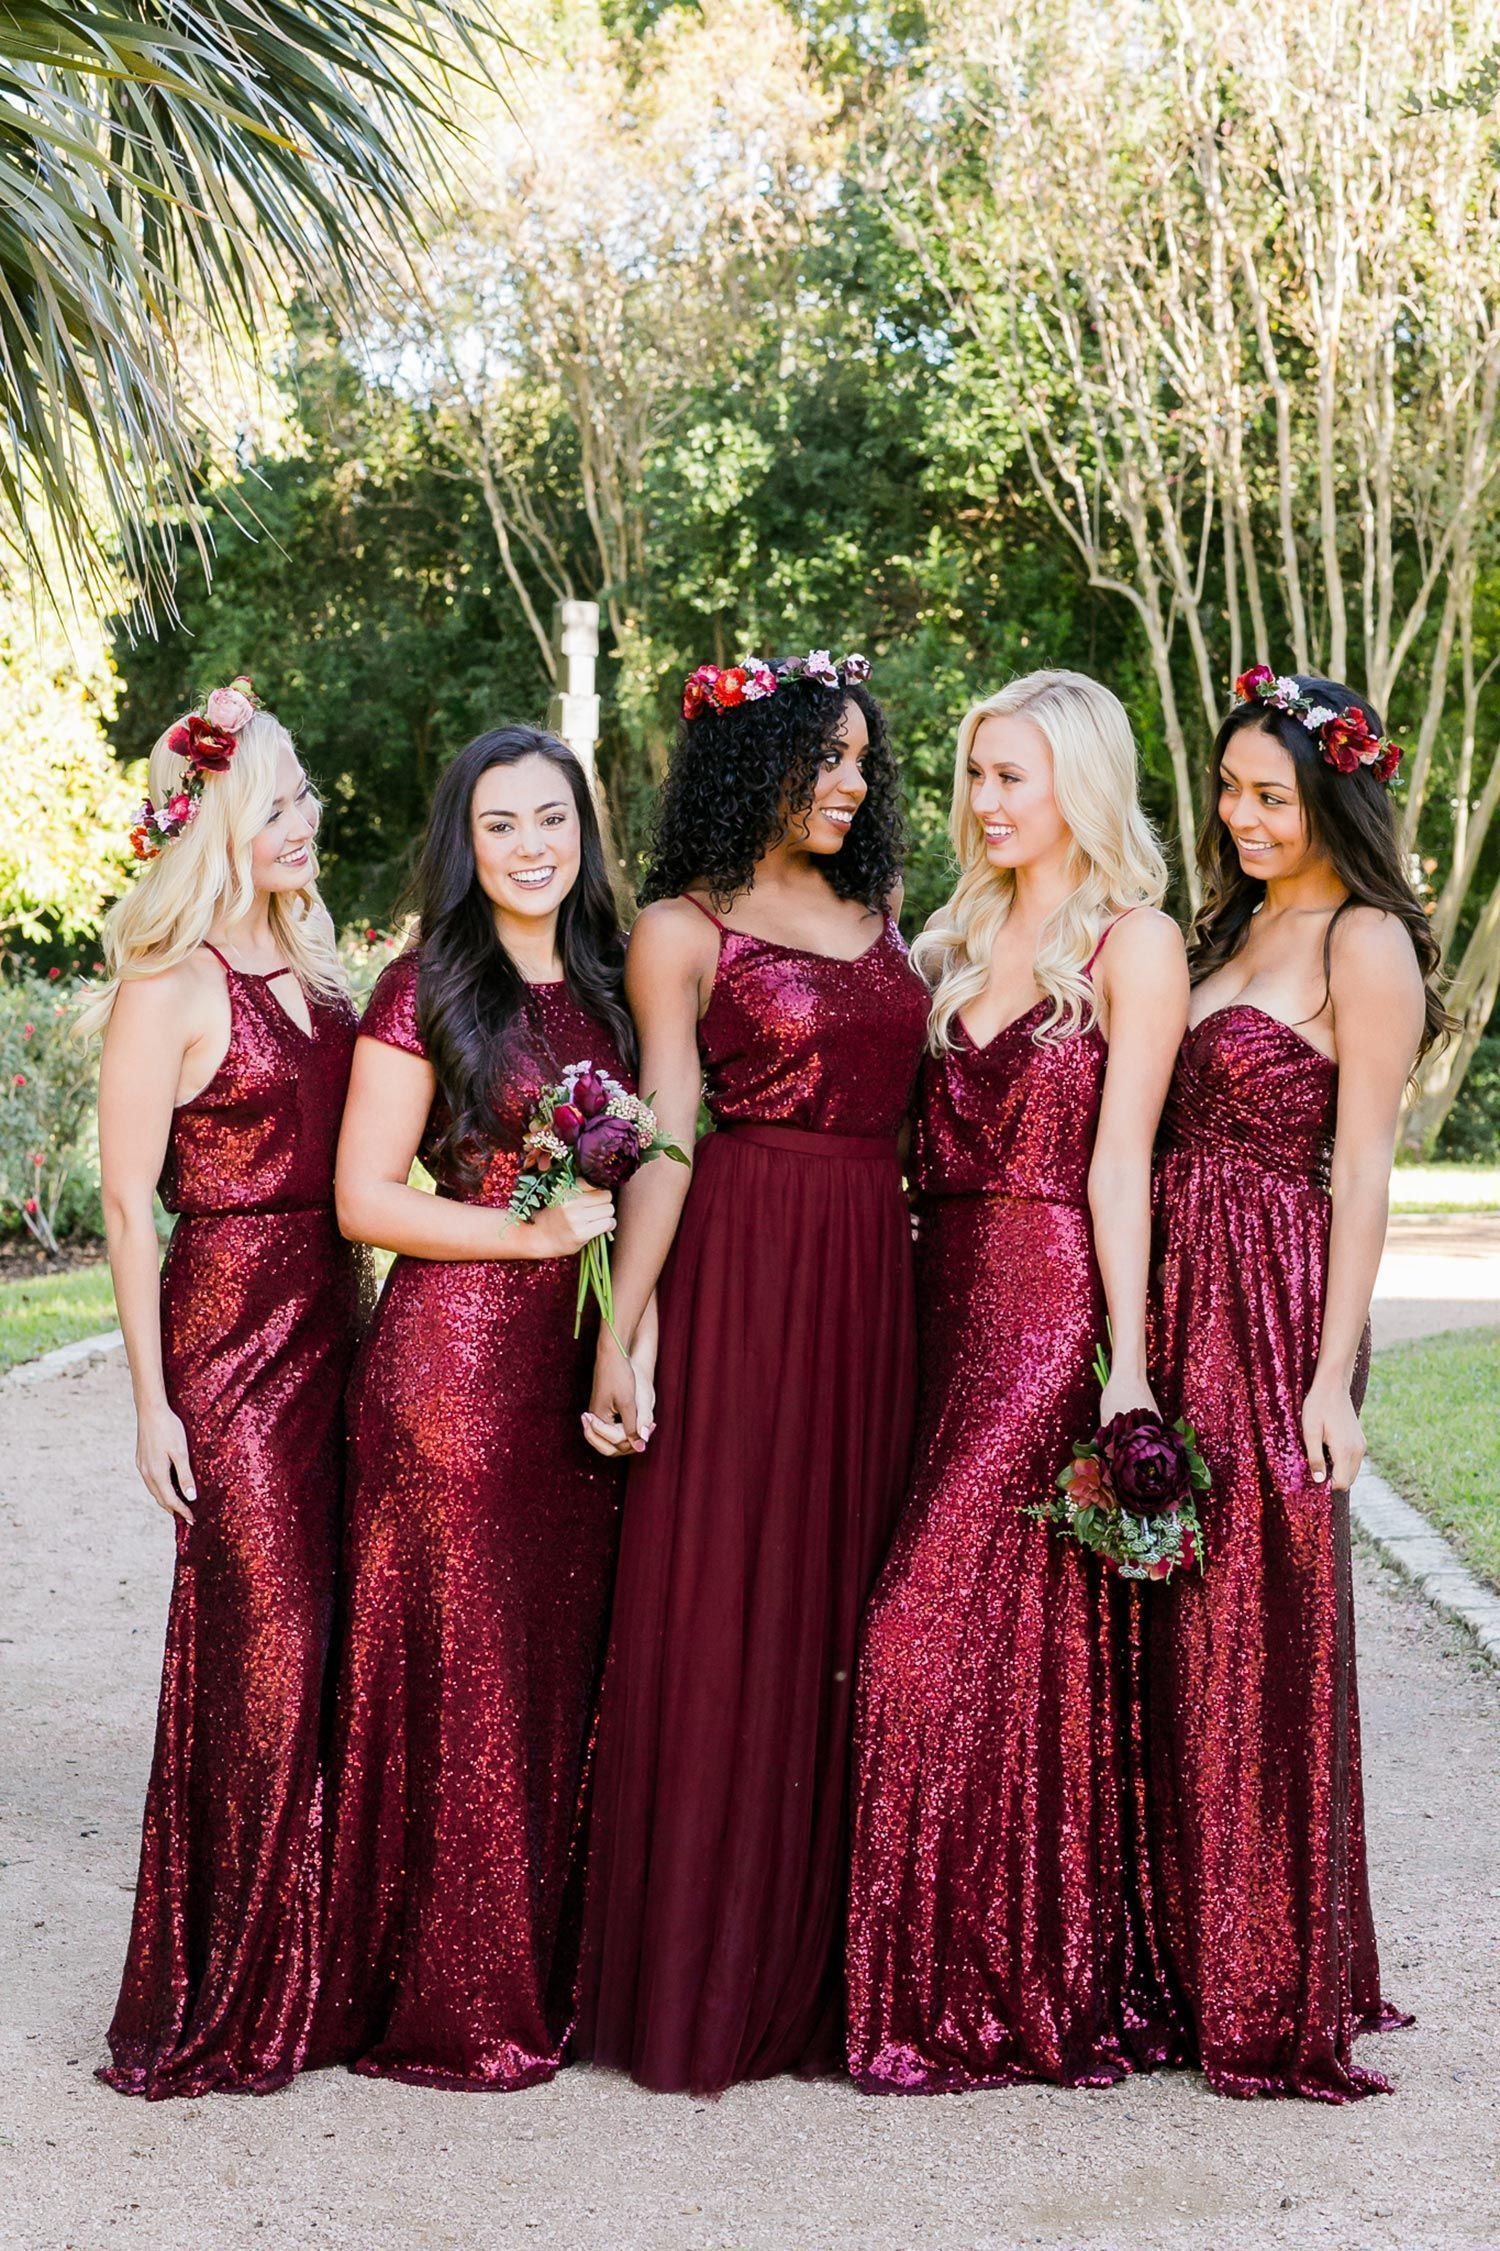 Custom Made Red Sequin Burgundy Mismatched Bridesmaid Dress Red Bridesmaid Dresses Unique Bridesmaid Dresses Burgundy Bridesmaid Dresses